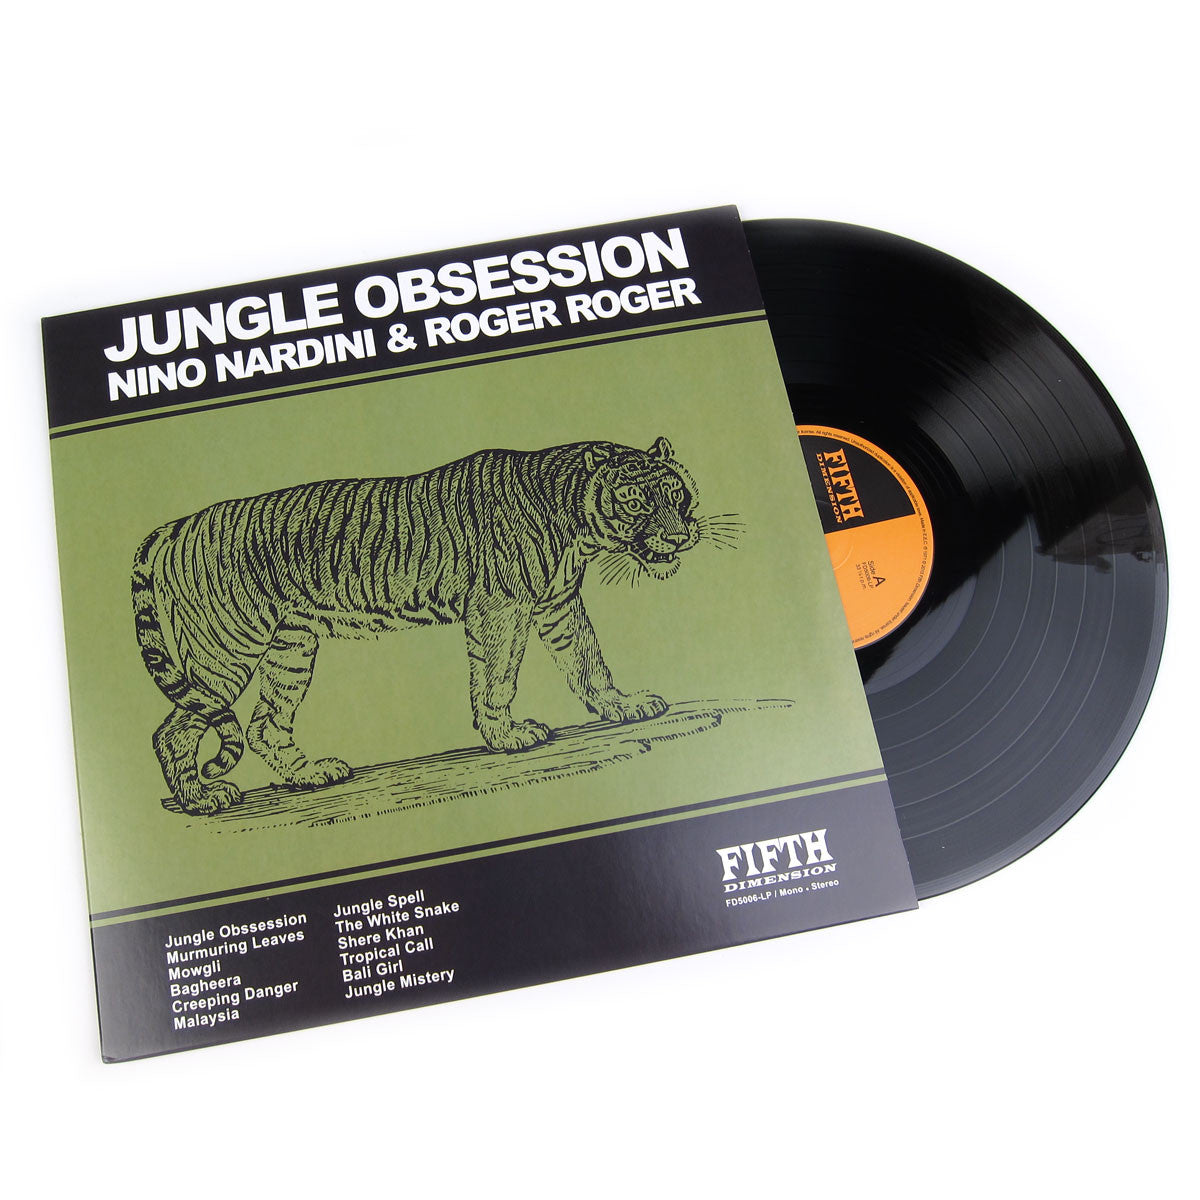 Nino Nardini & Roger Roger: Jungle Obsession Vinyl LP